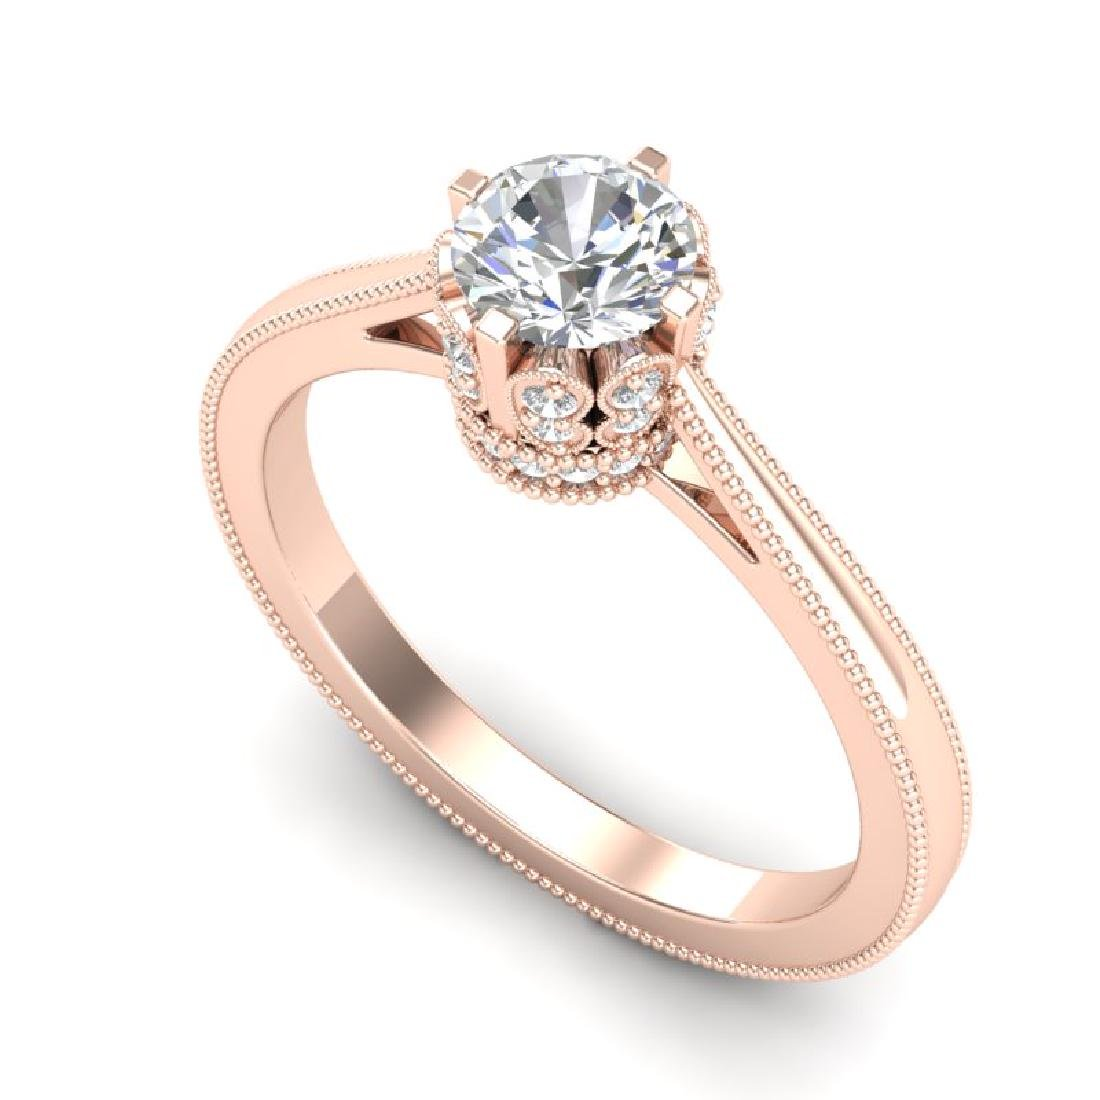 0.81 CTW VS/SI Diamond Solitaire Art Deco Ring 18K Rose